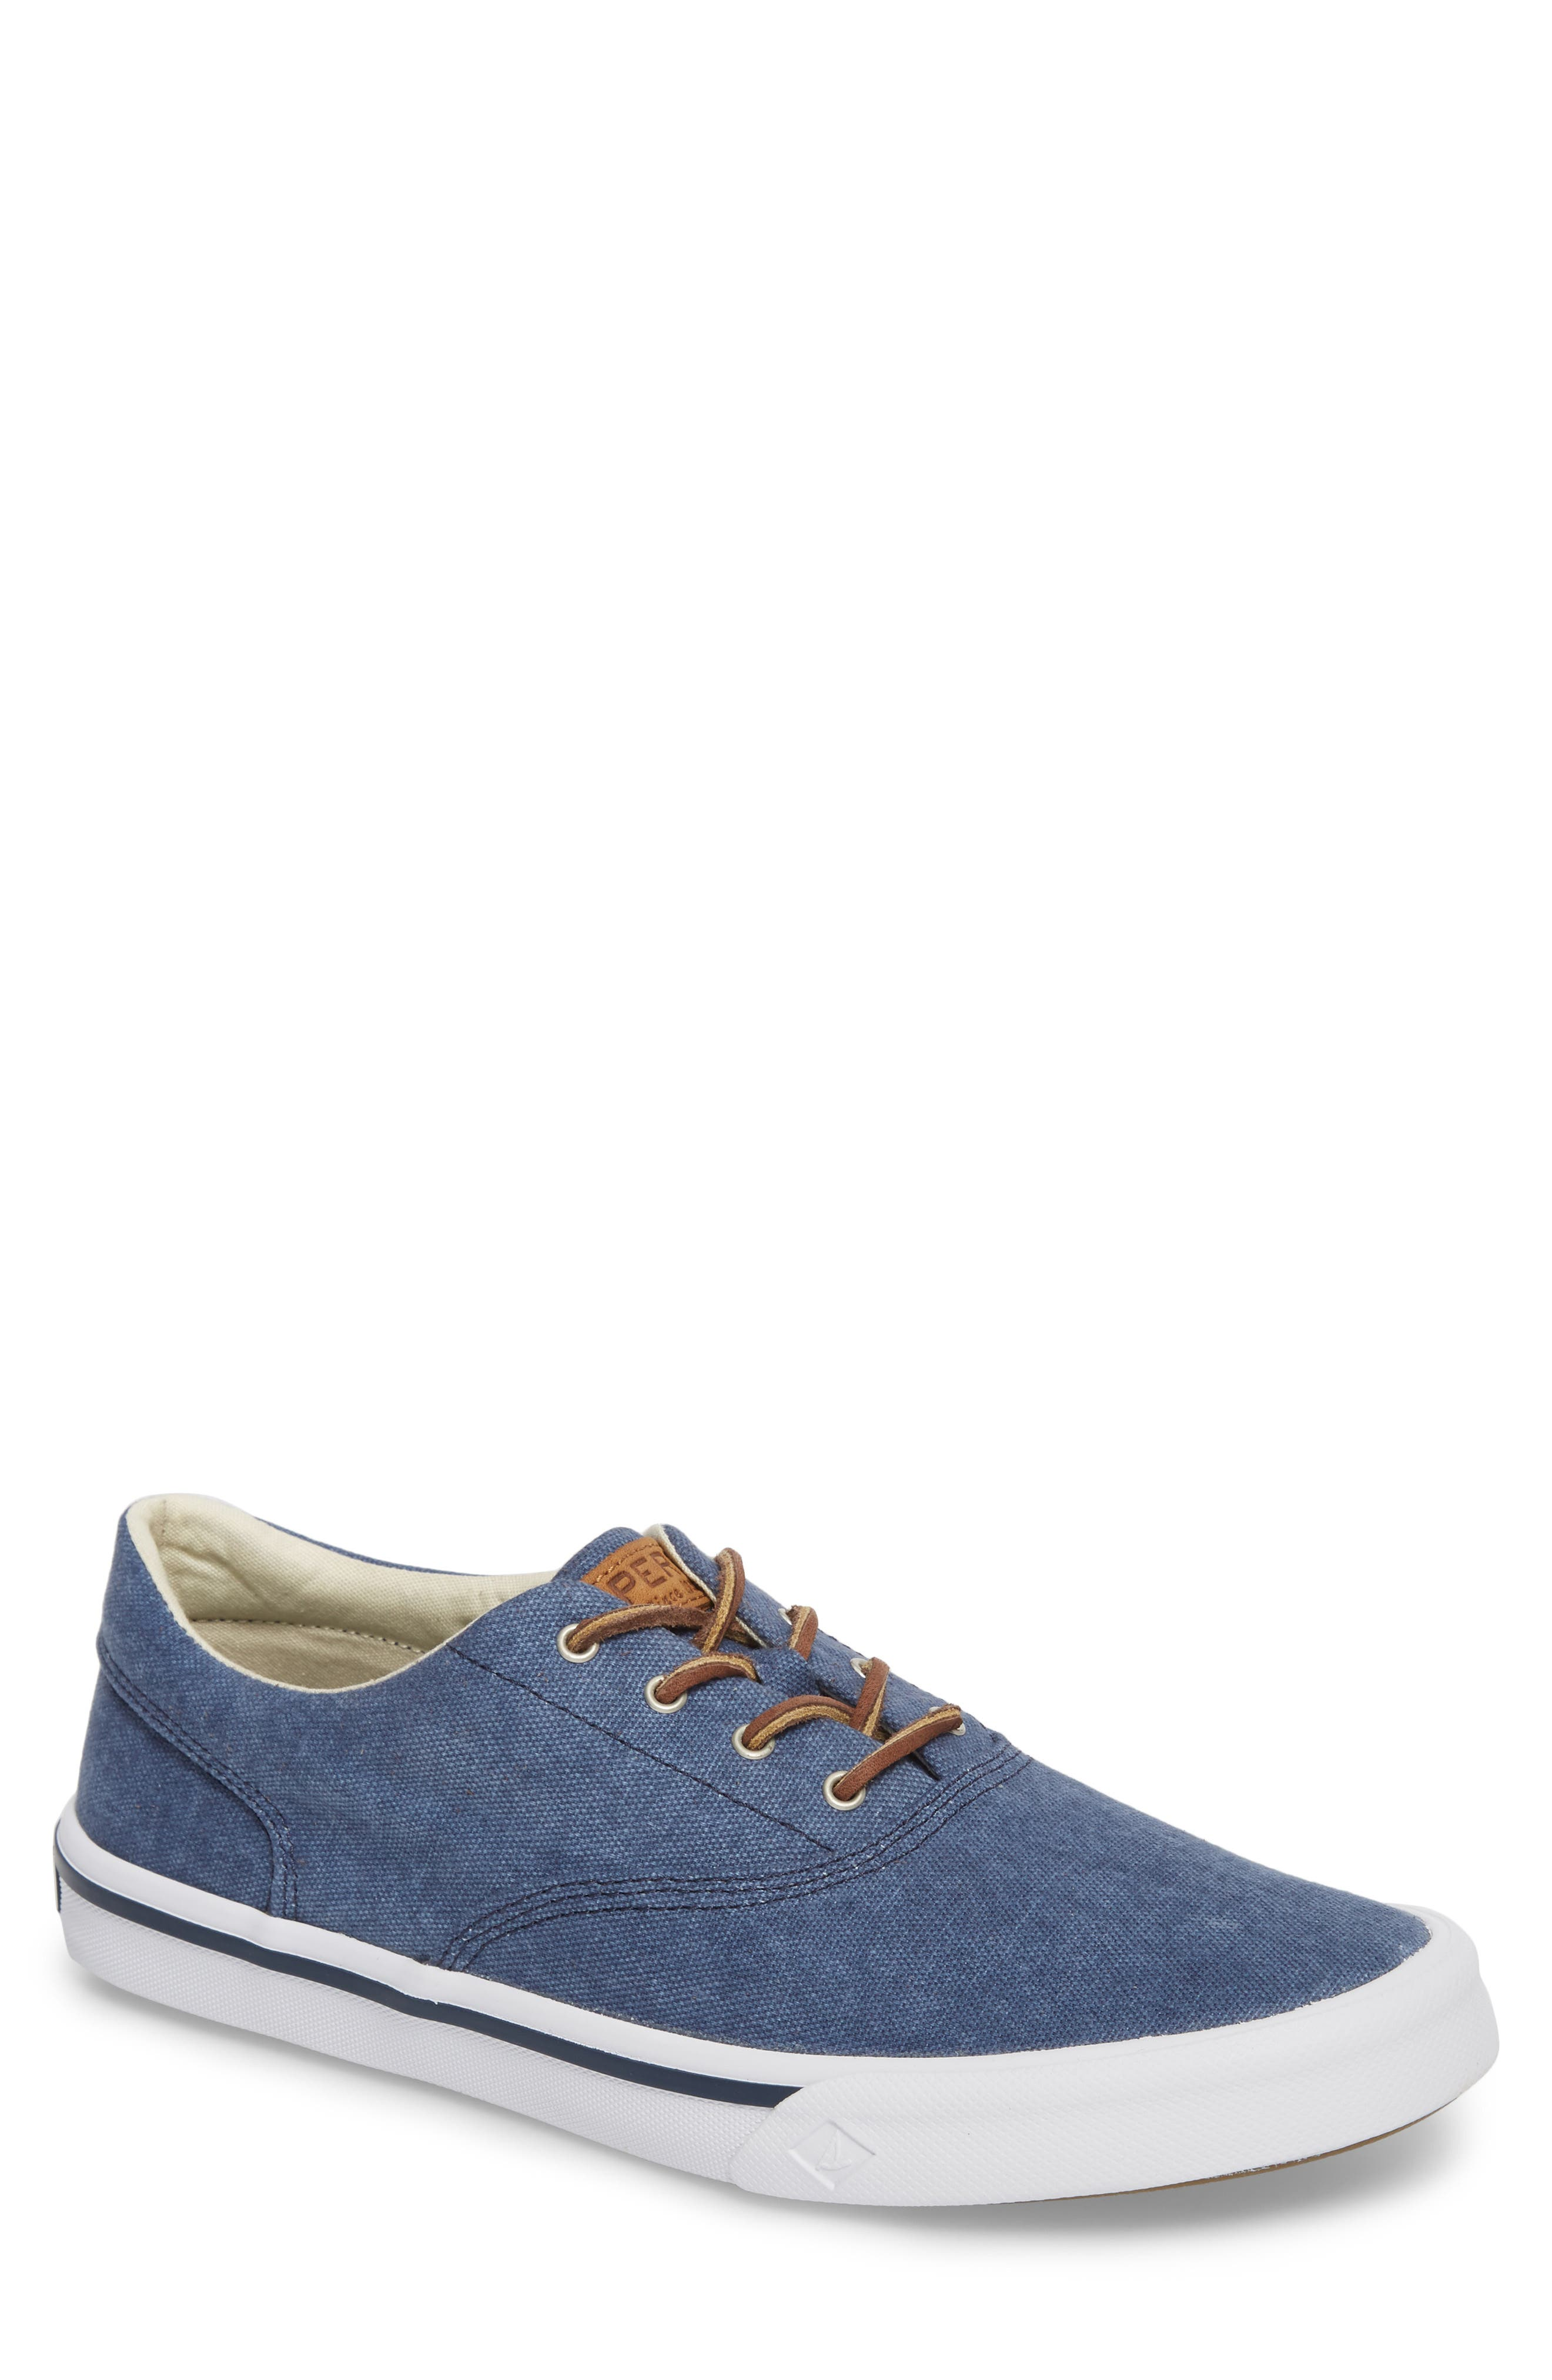 'Striper LL' Sneaker, Main, color, NAVY FABRIC